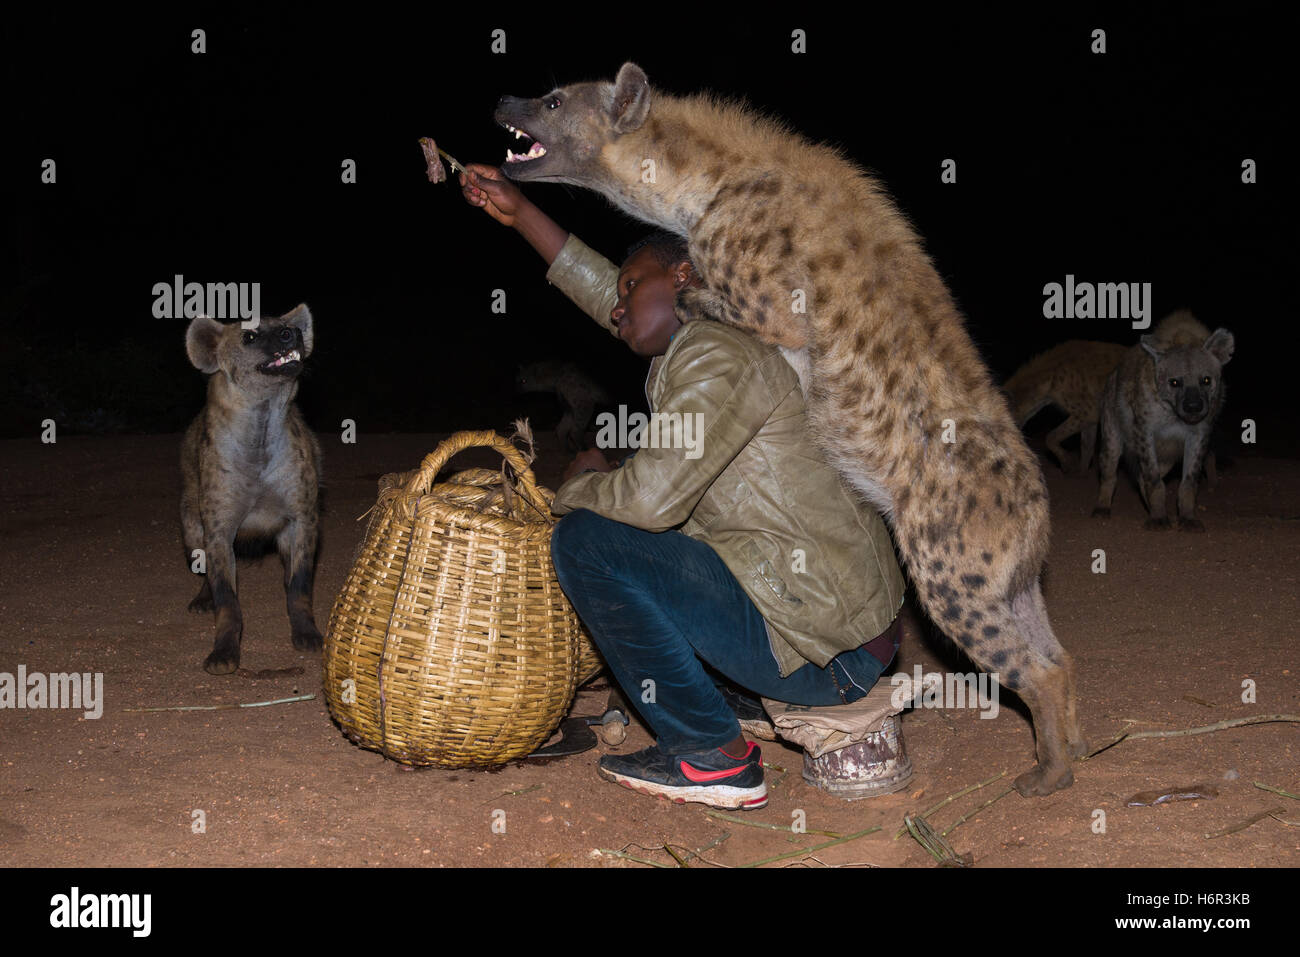 Son of Hyena Man feeding wild Spotted Hyenas (Crocuta crocuta) by hand, outside of the walled city of Harar, Ethiopia - Stock Image